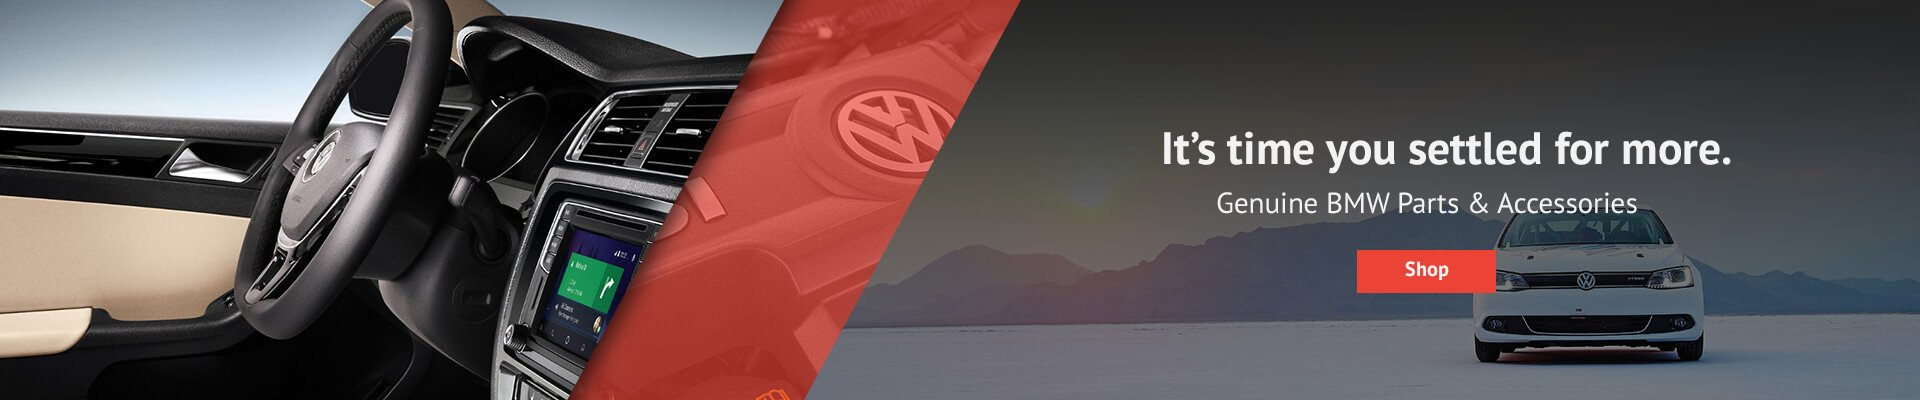 Volkswagen Accessories and Parts